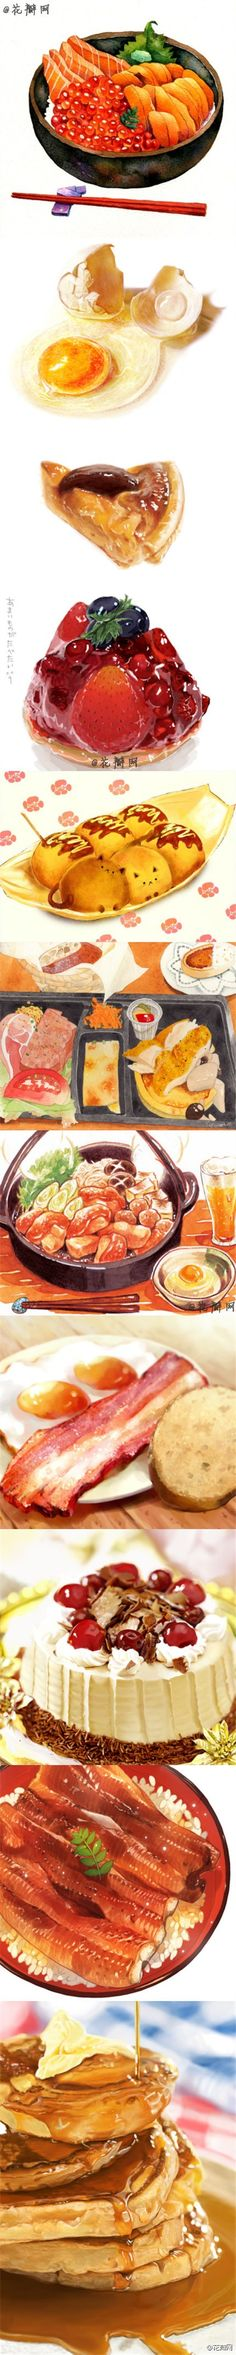 Love the details on this painting that make all food look realistic and delicious.